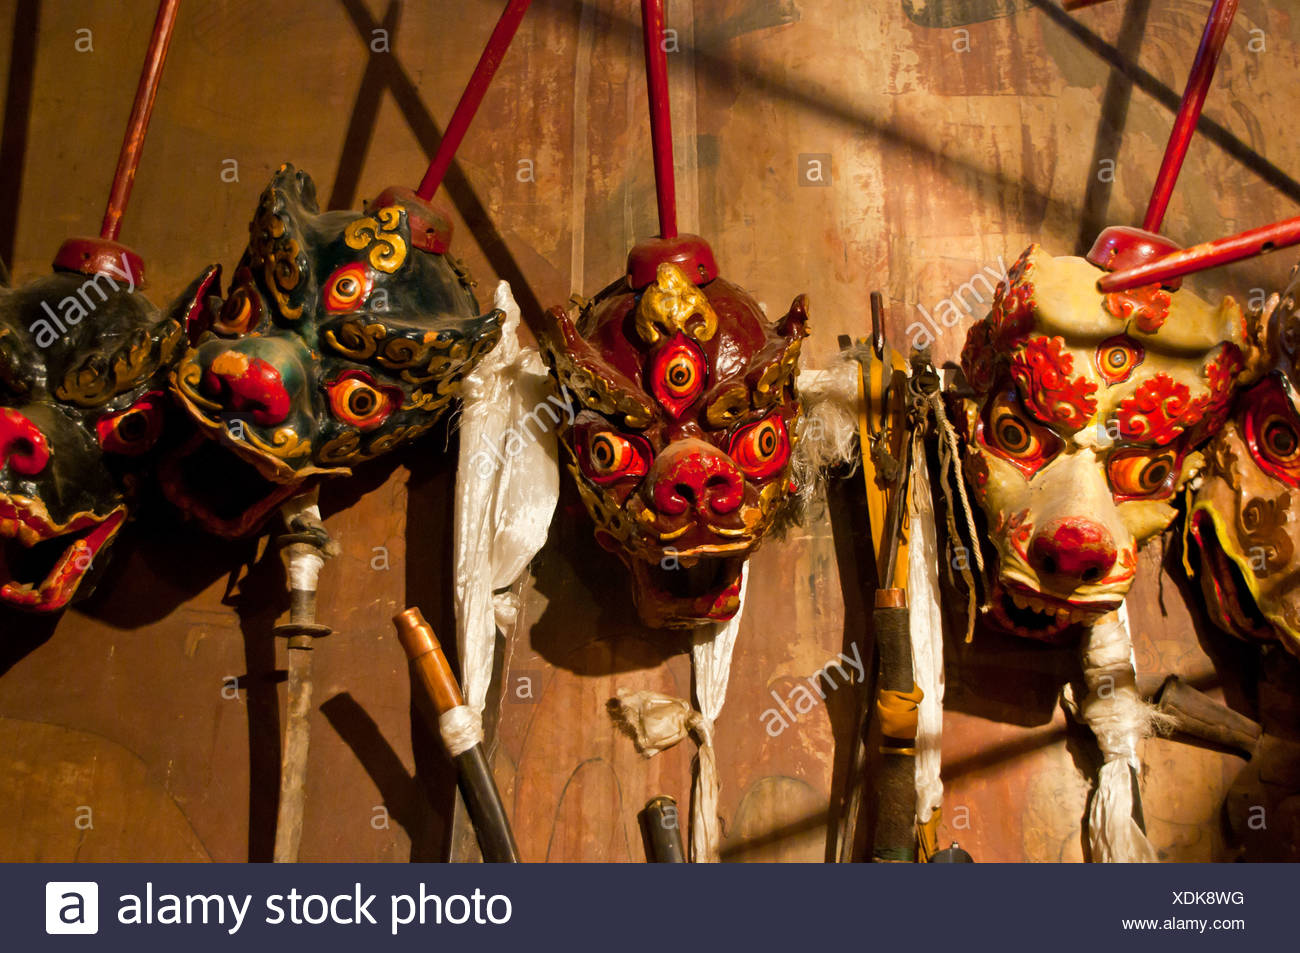 Old masks in Gyantse, Tibet, Asia - Stock Image